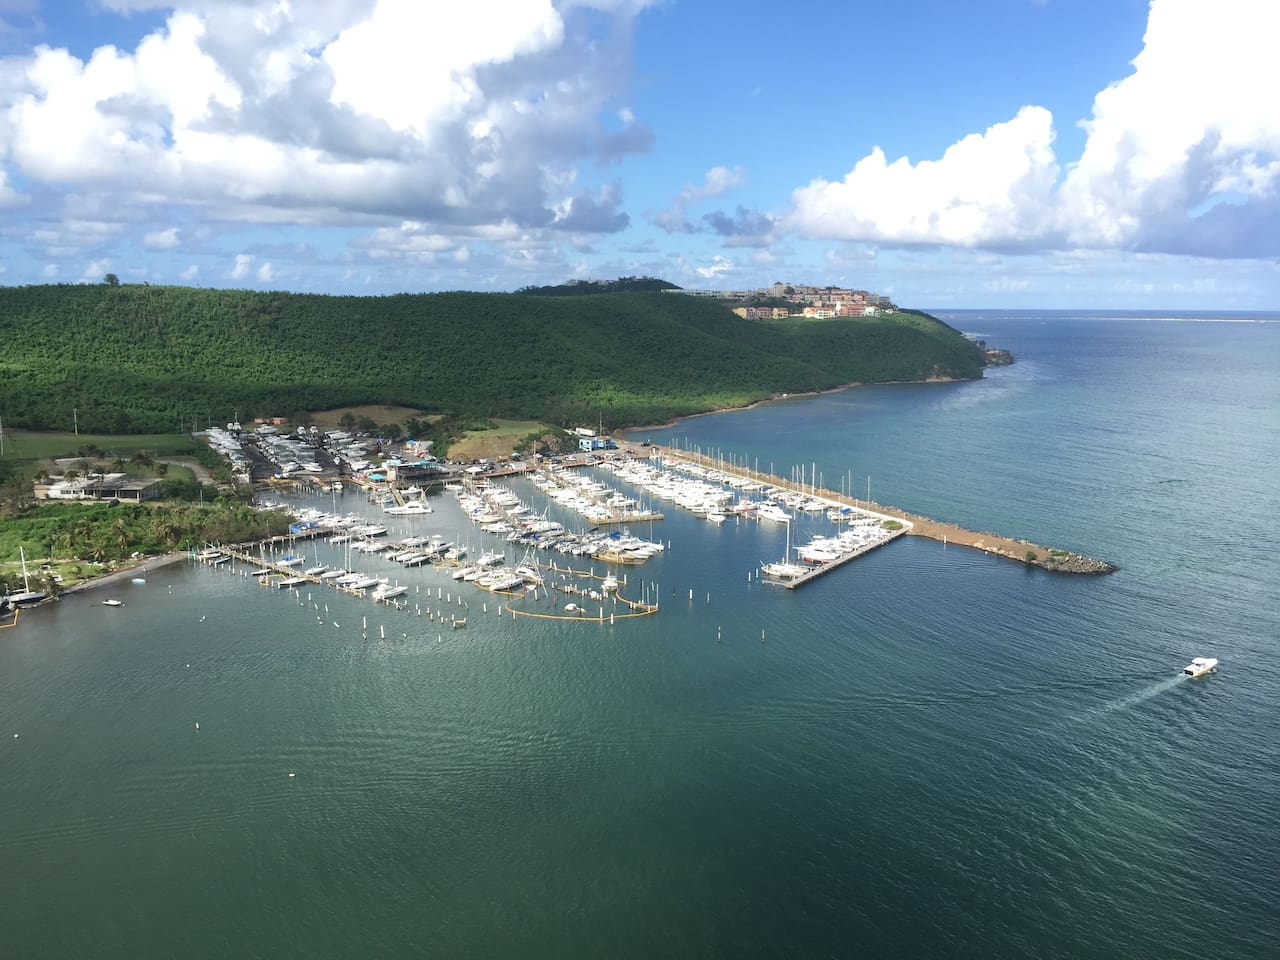 View from the apartment balcony to the marina and the El Conquistador Hotel & Resort.